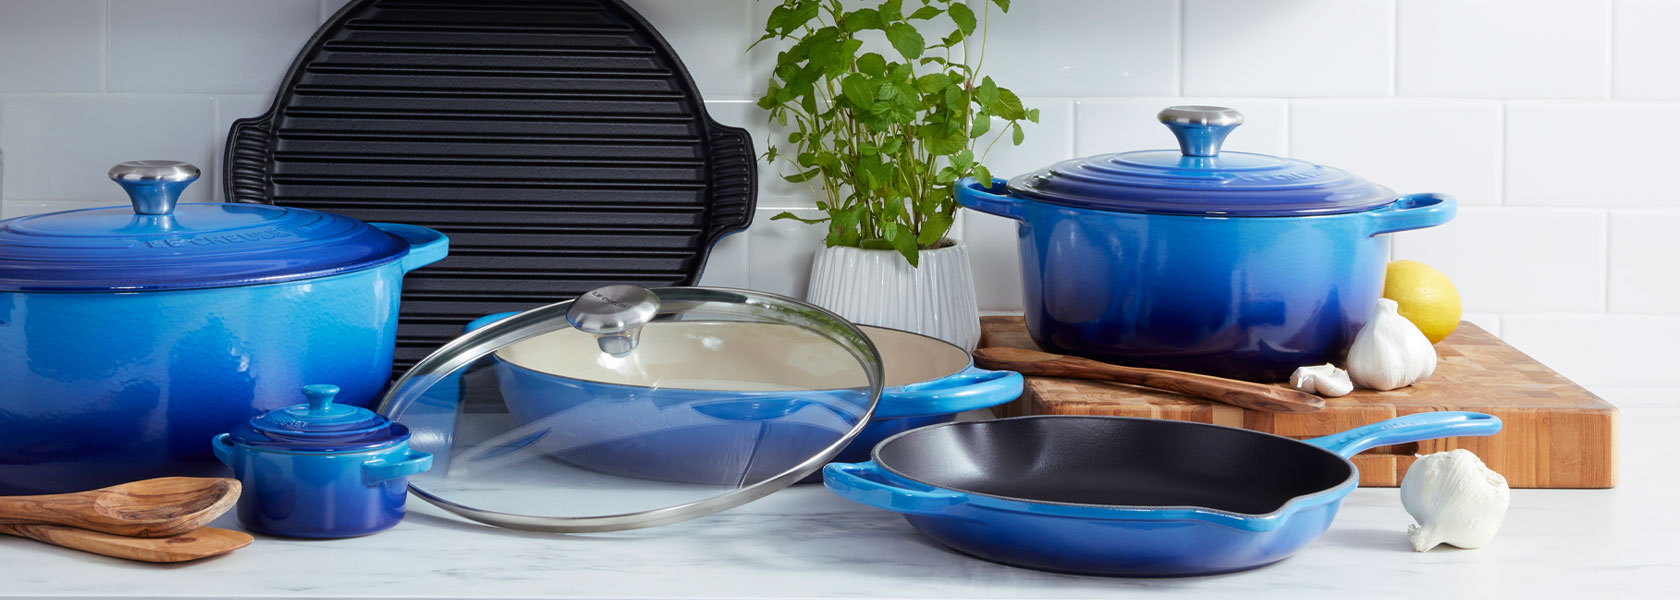 Le Creuset New & Exclusive cookware in Azure blue color